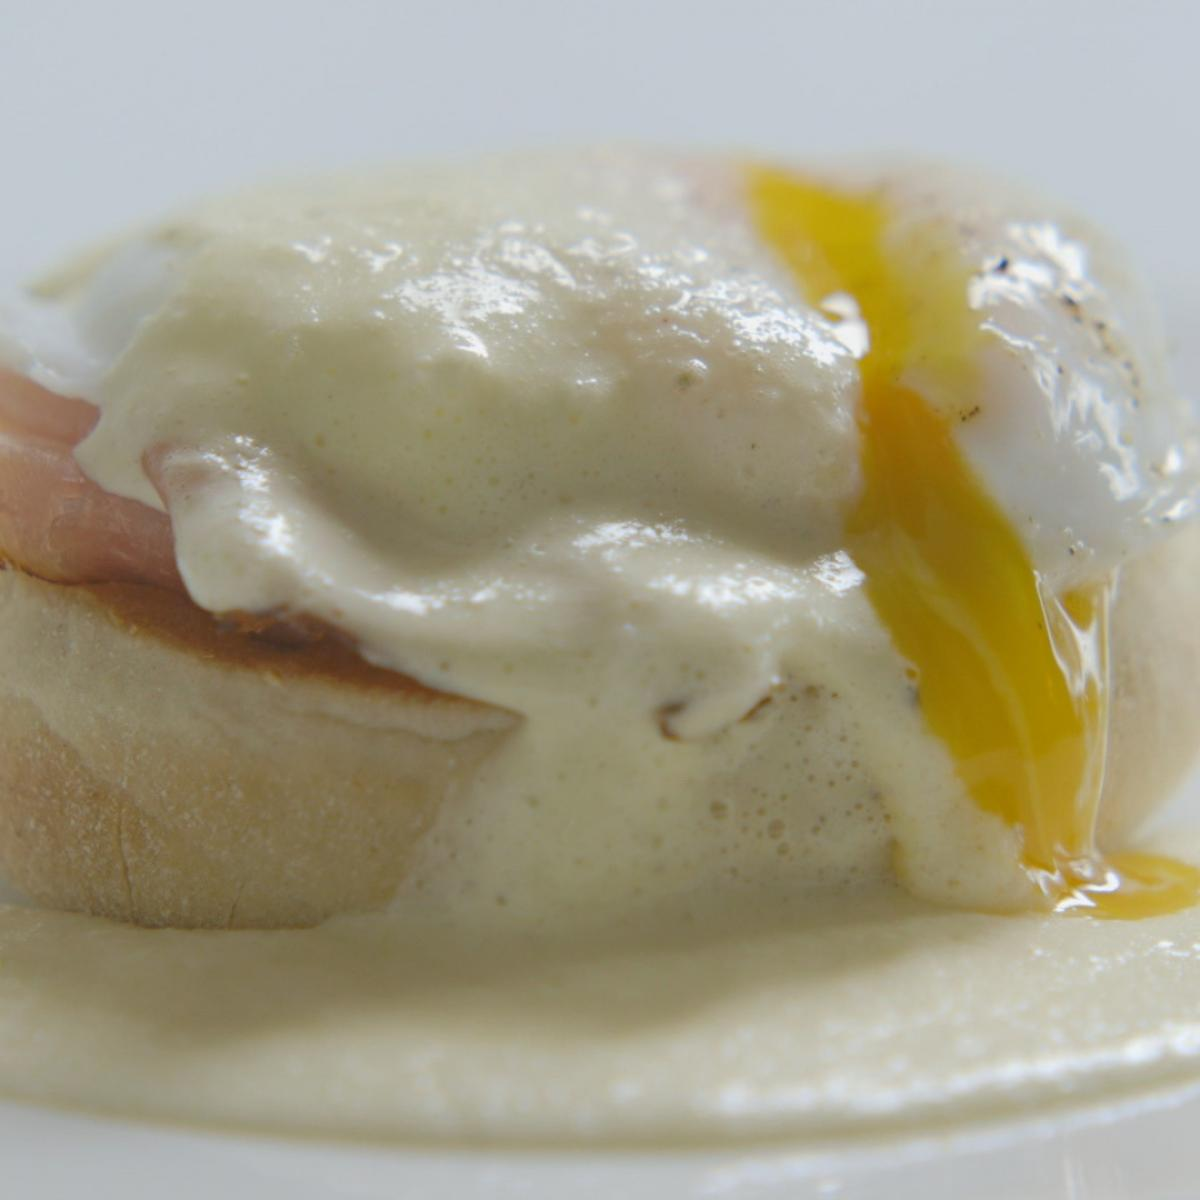 A picture of Delia's Eggs Benedict recipe